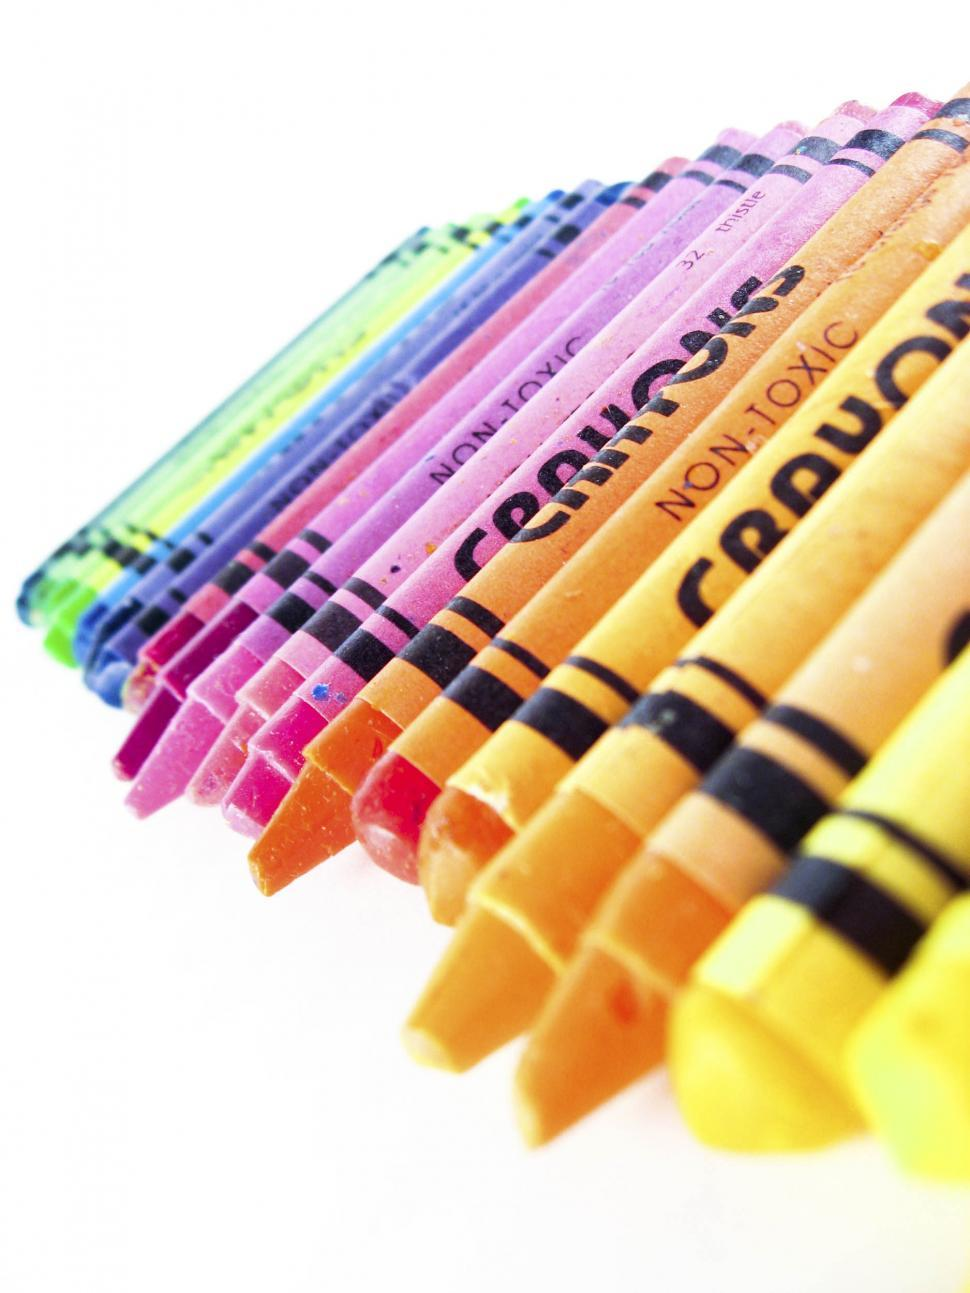 Download Free Stock Photo of crayons